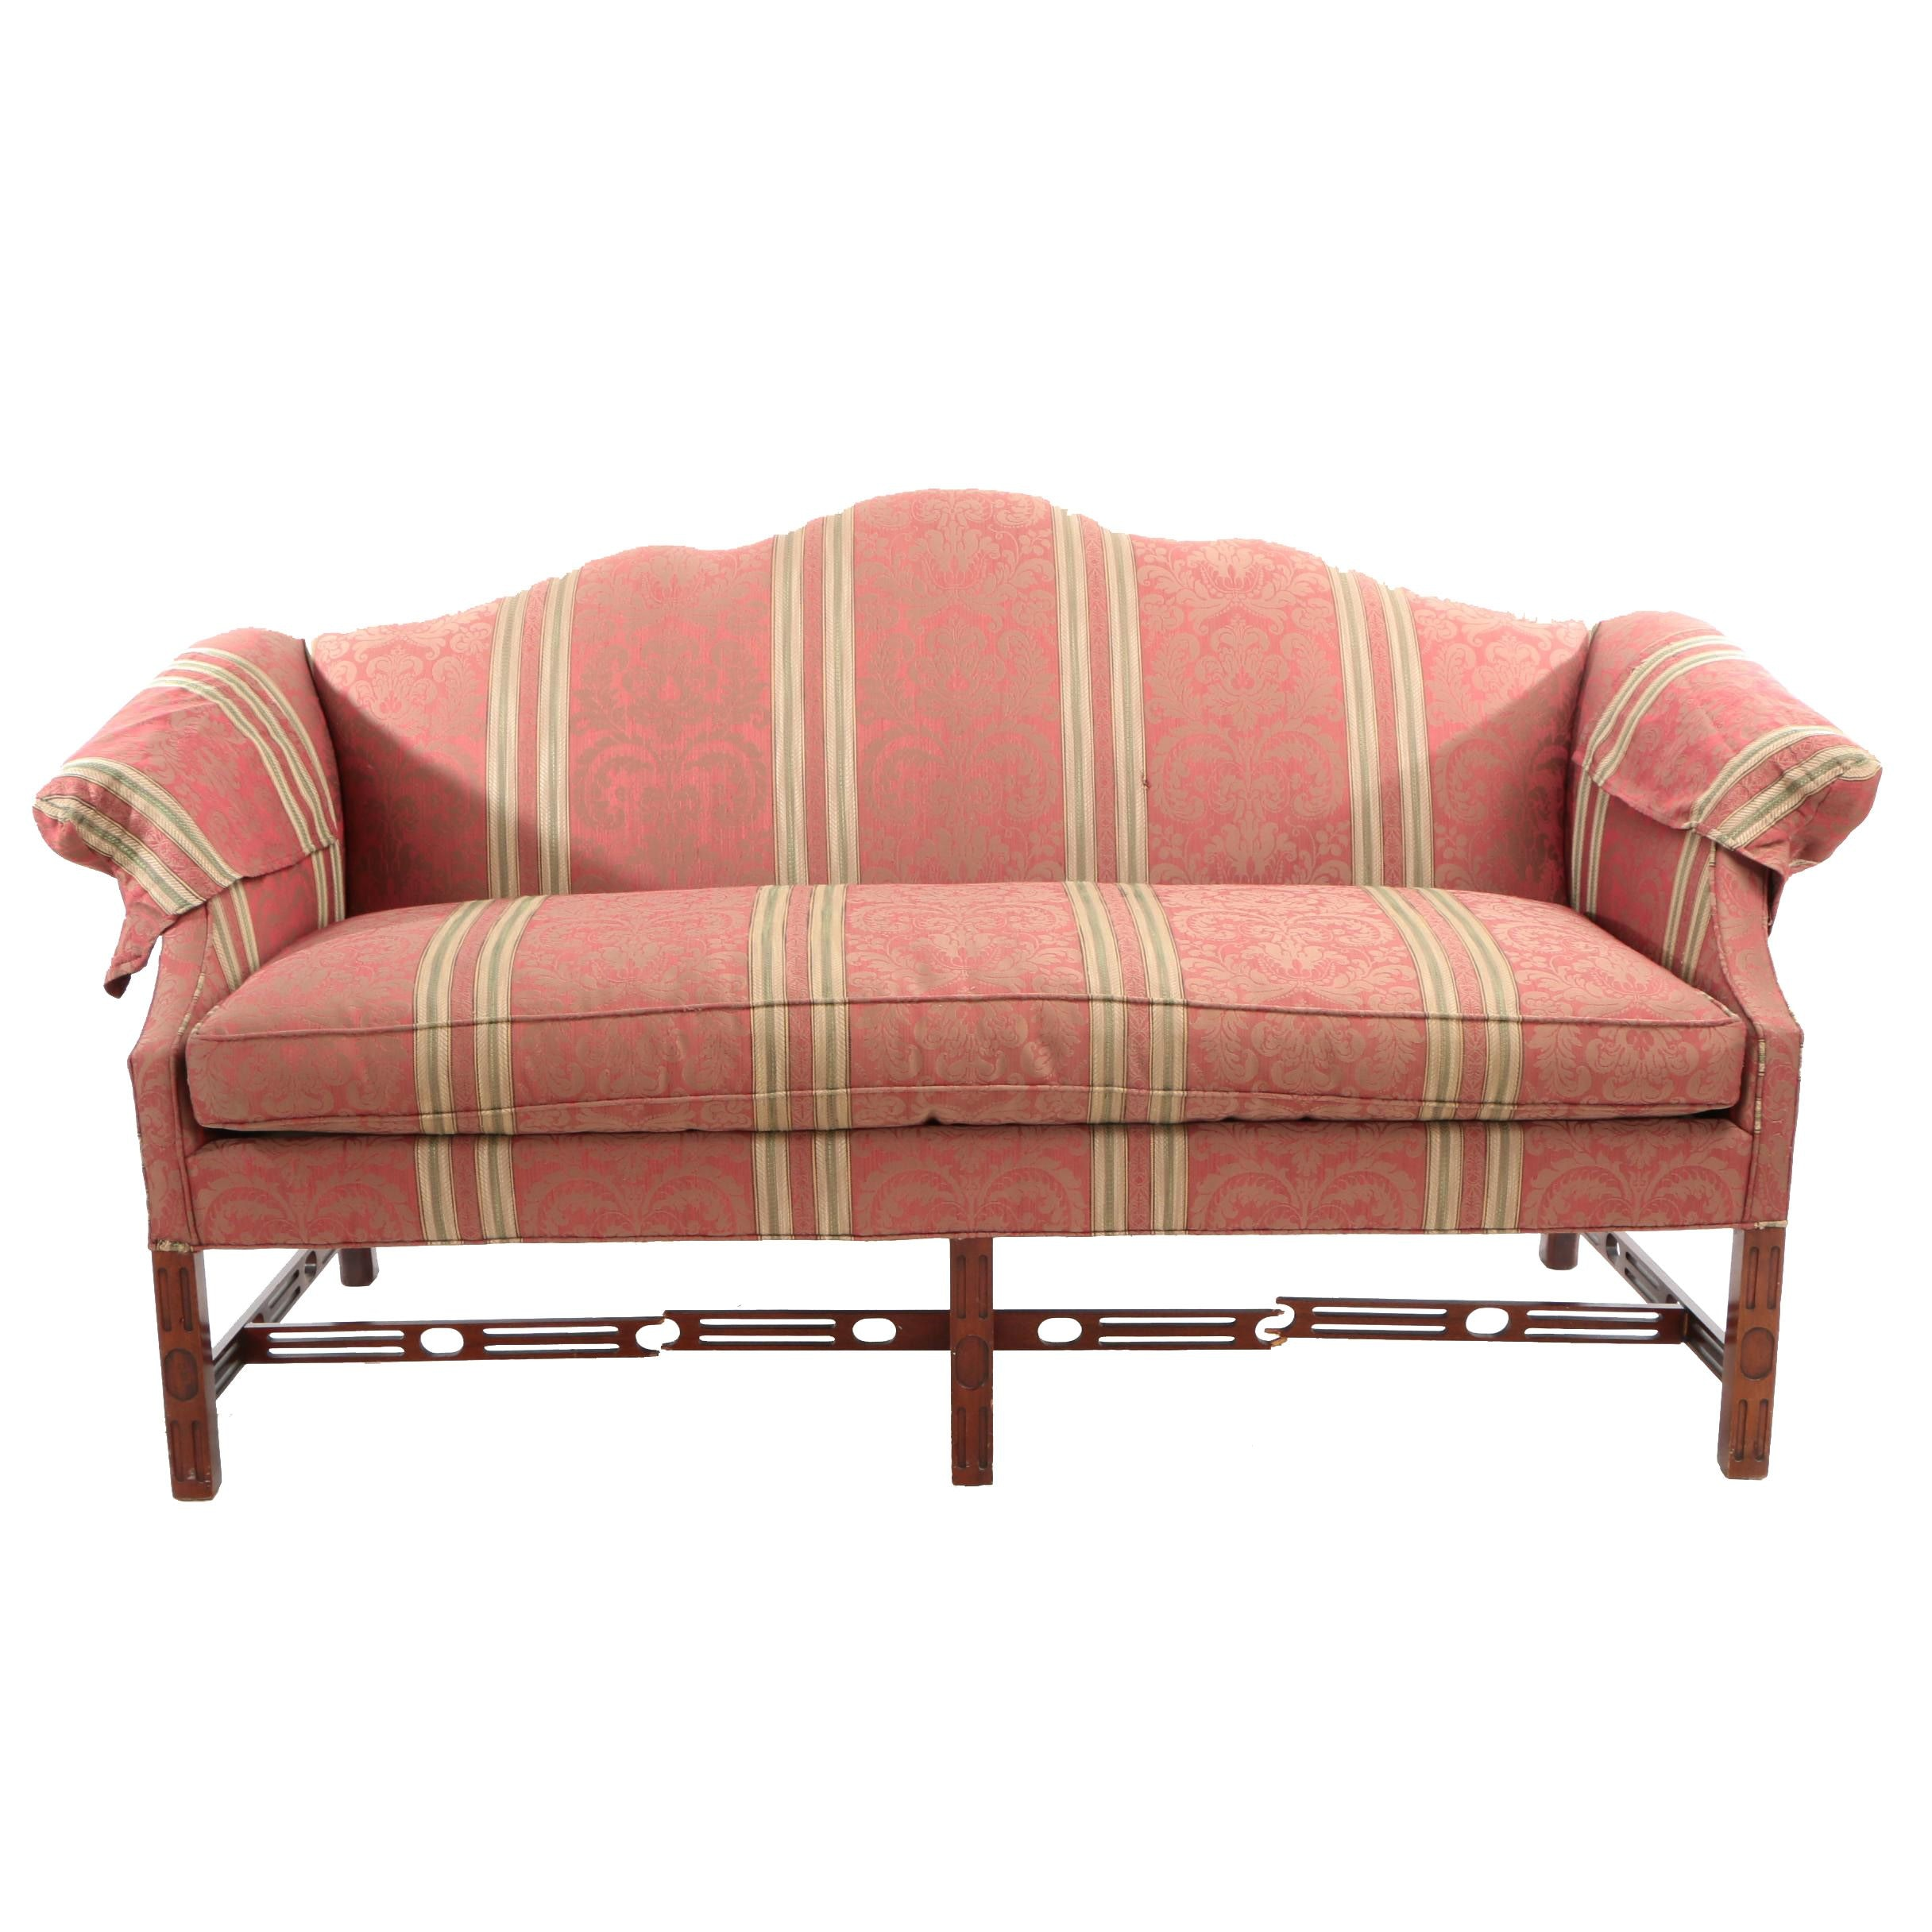 George III Style Mahogany Sofa by Hickory Chair, 20th Century